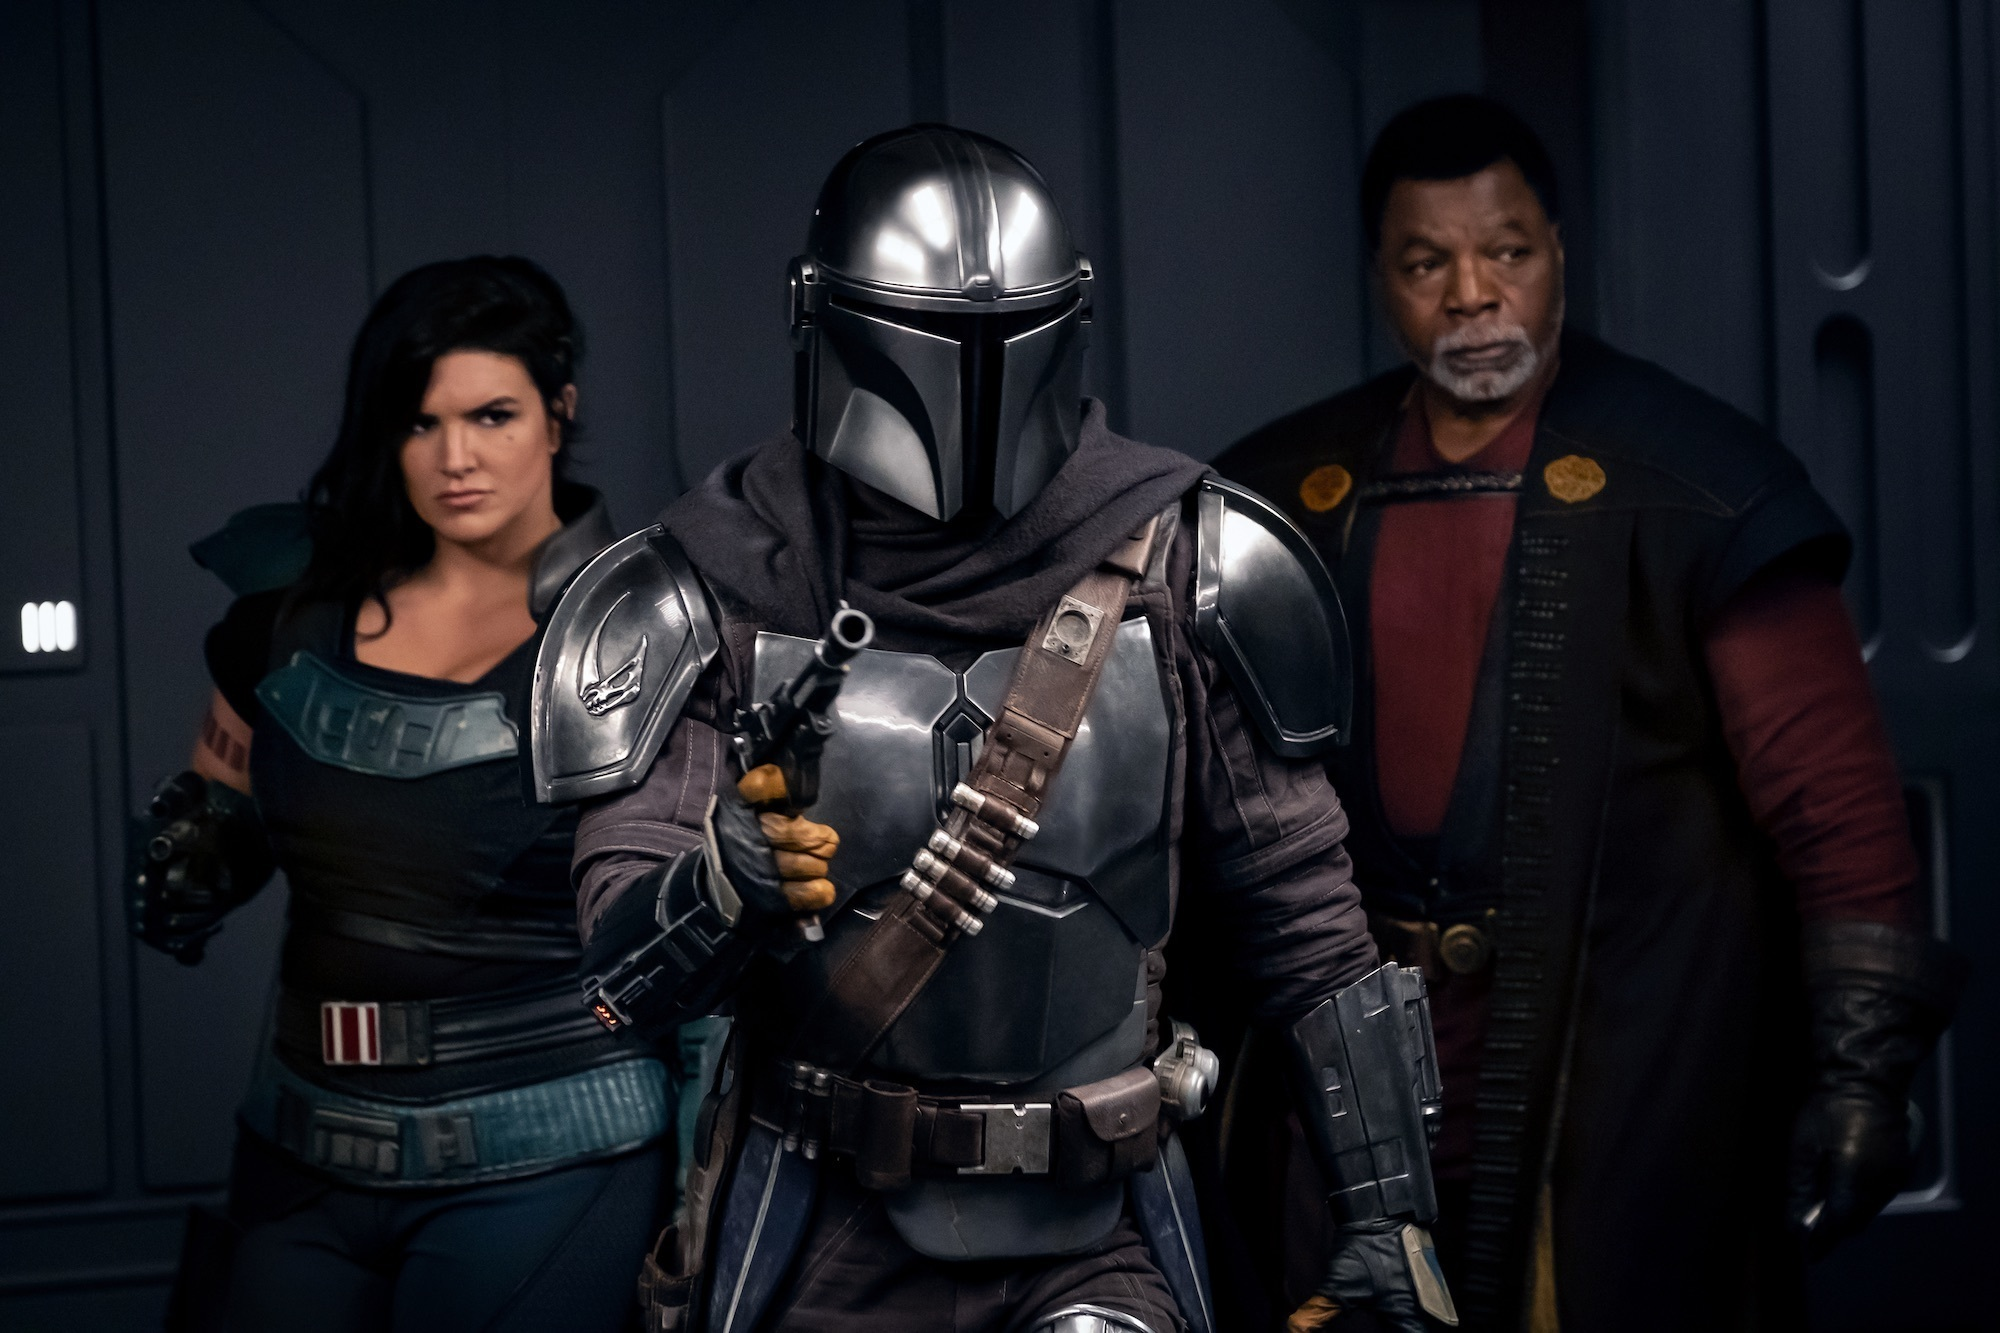 Cara Dune, The Mandalorian, and Greef Karga stand in an elevator with their blasters up